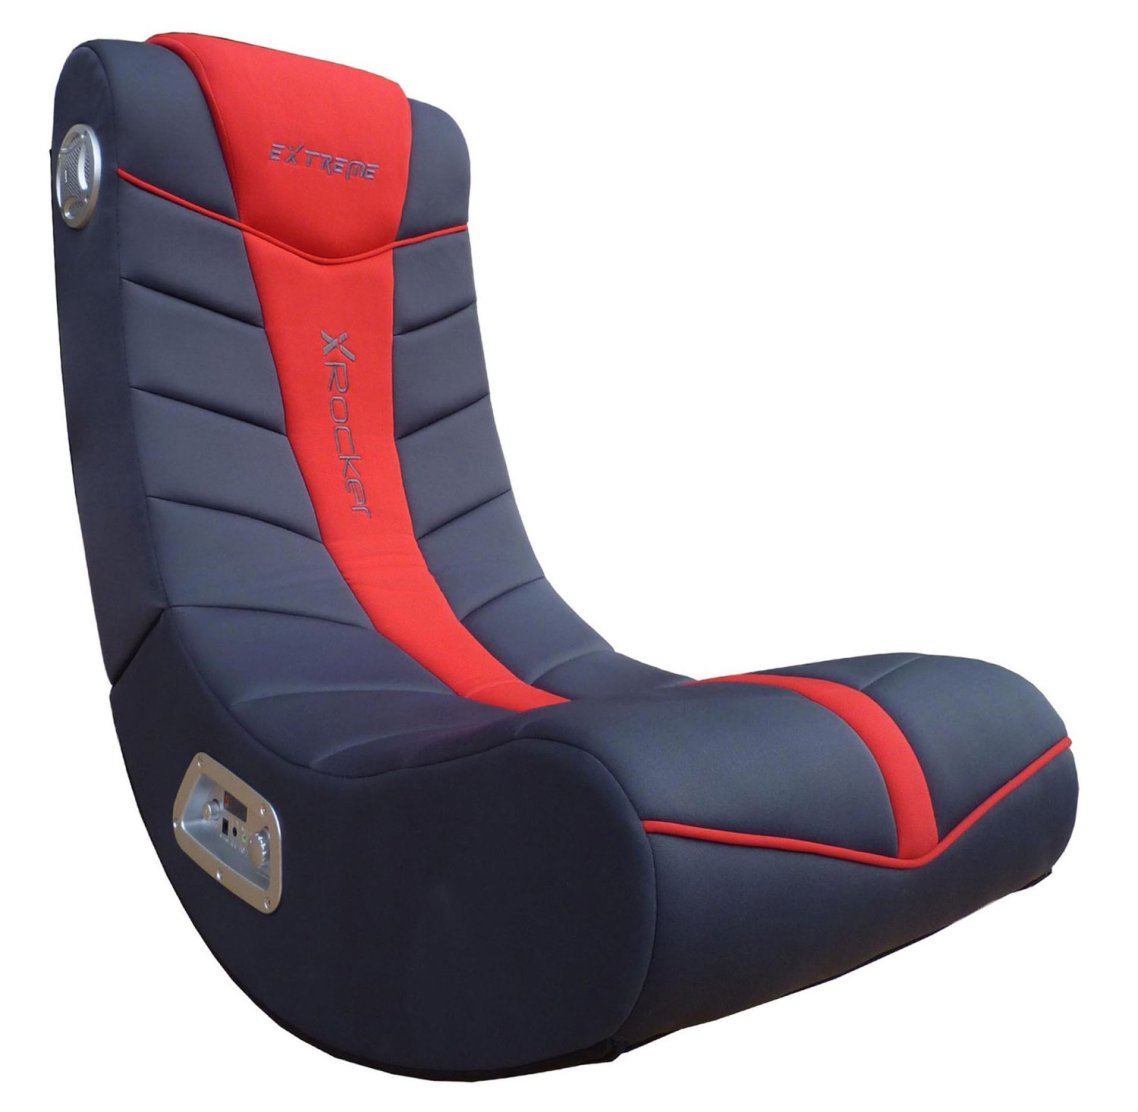 Best Video Game Chair Home Furniture Design